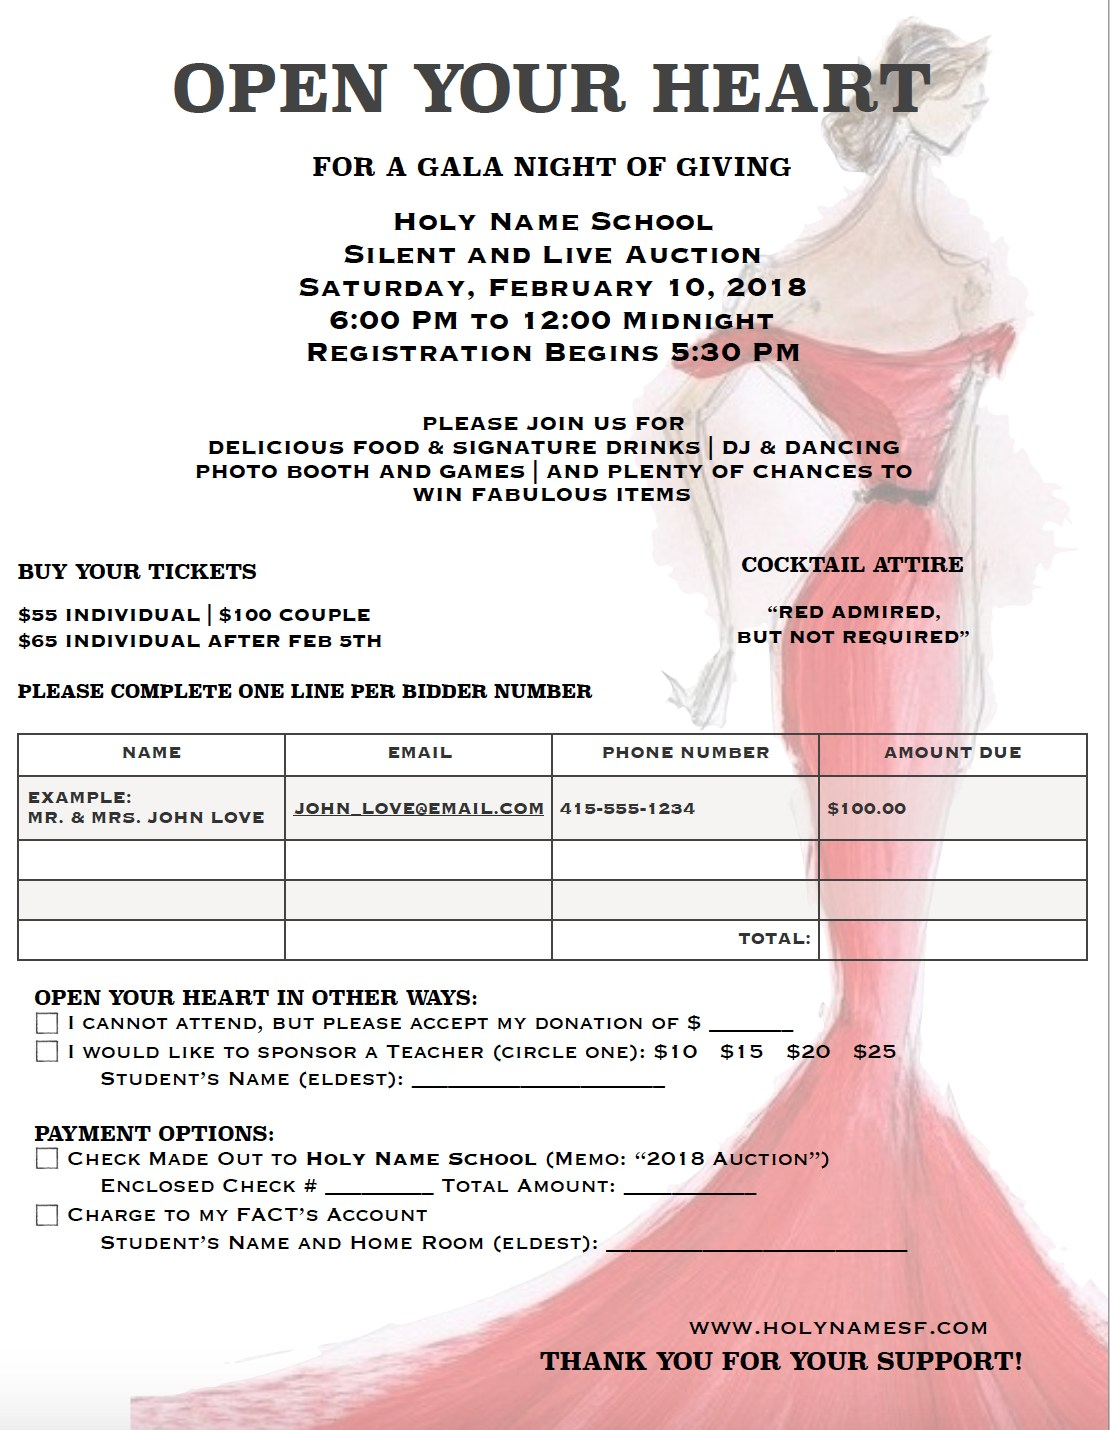 Auction invitation form auction holy name school auction invitation form thecheapjerseys Gallery